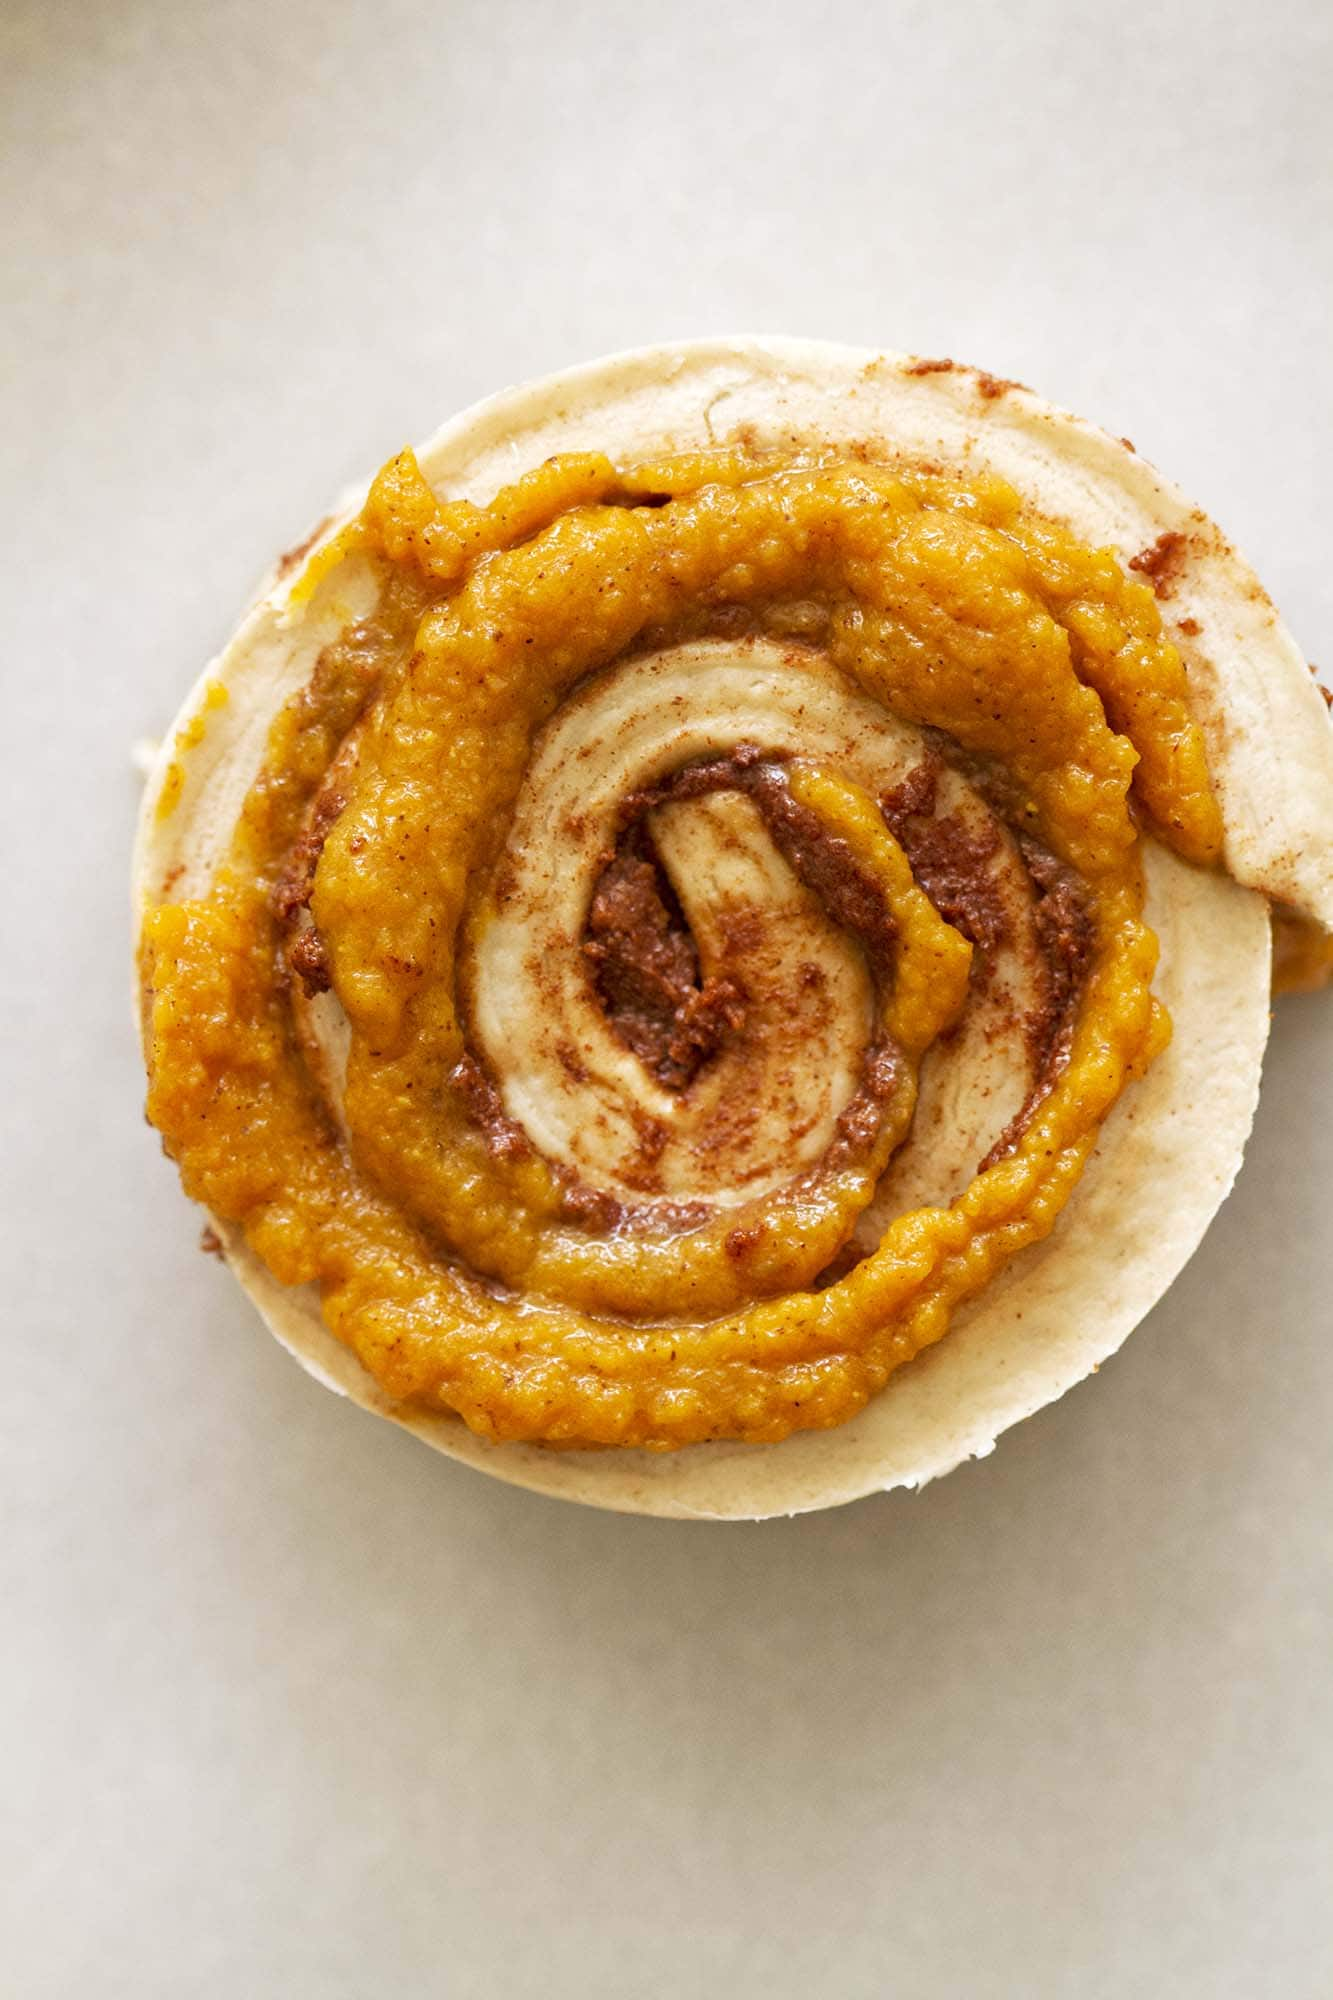 brown butter pumpkin cinnamon roll ready for baking